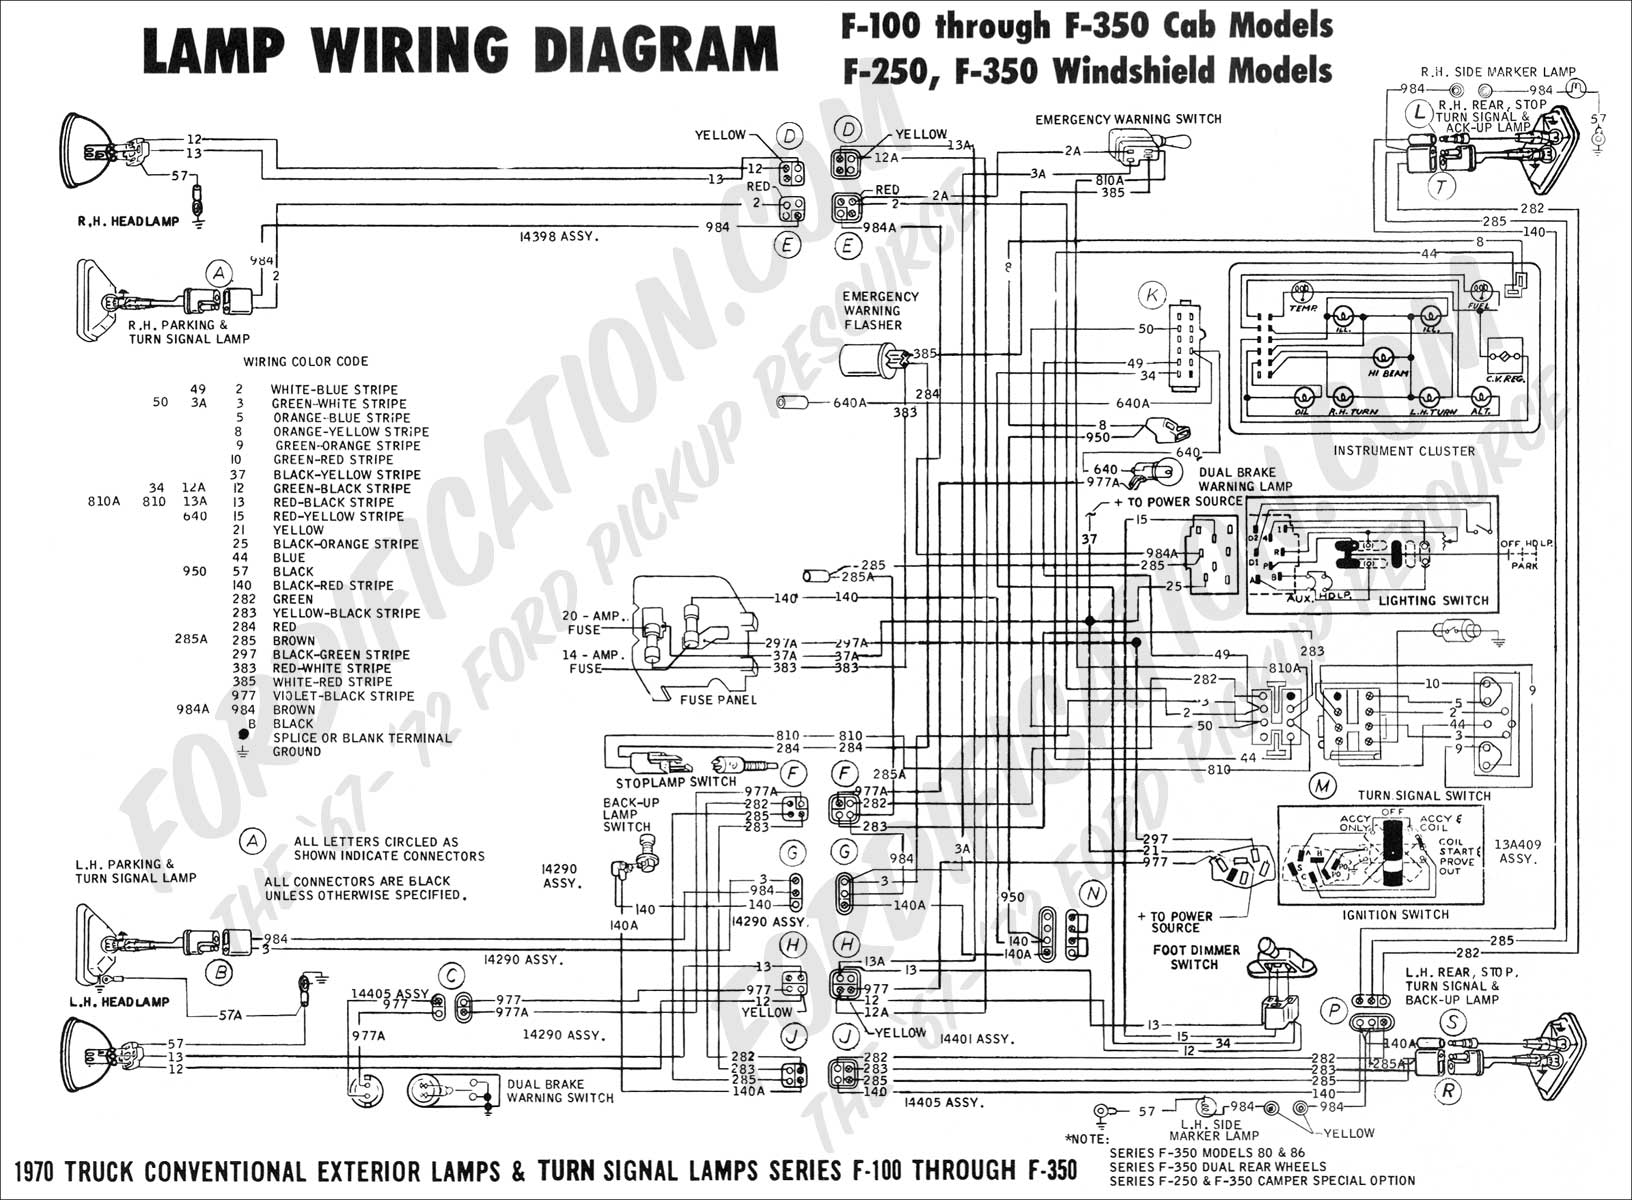 wiring diagram_70ext lights01 1986 ford f250 wiring diagram ford truck fuel system diagram 1986 ford f150 ignition wiring diagram at creativeand.co